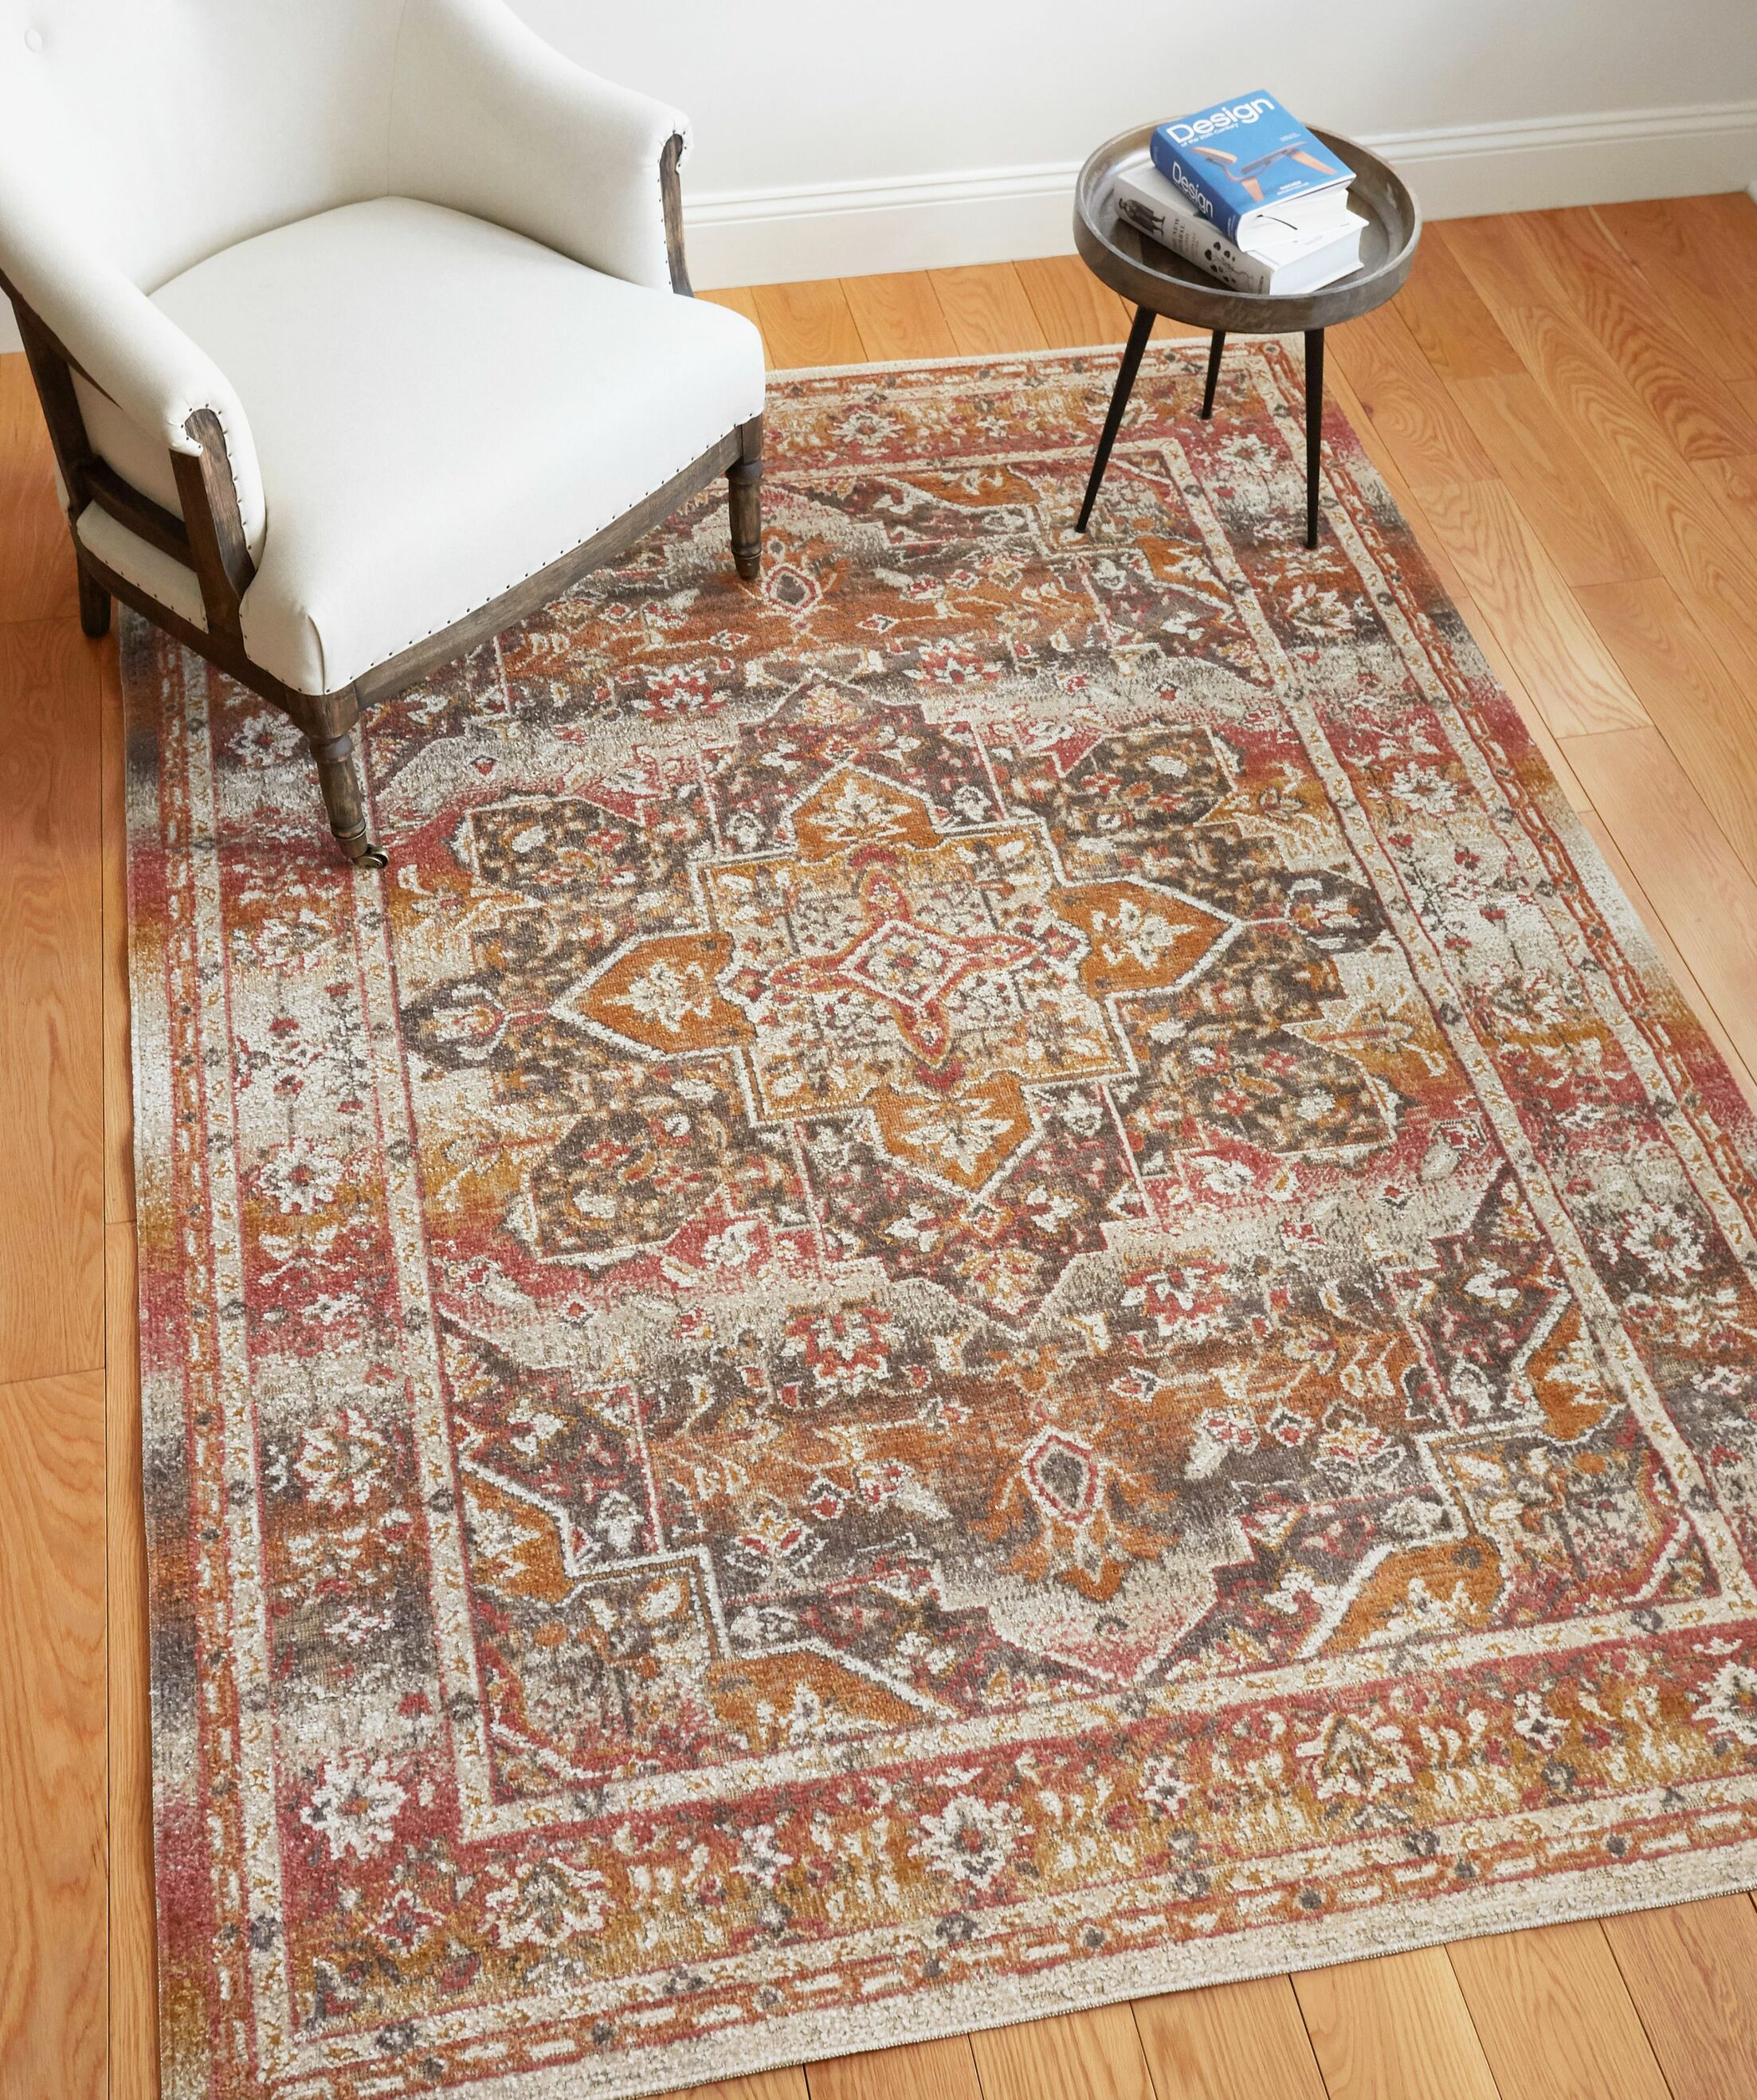 Cortright Beige Area Rug Rug Size: Rectangle 5'3